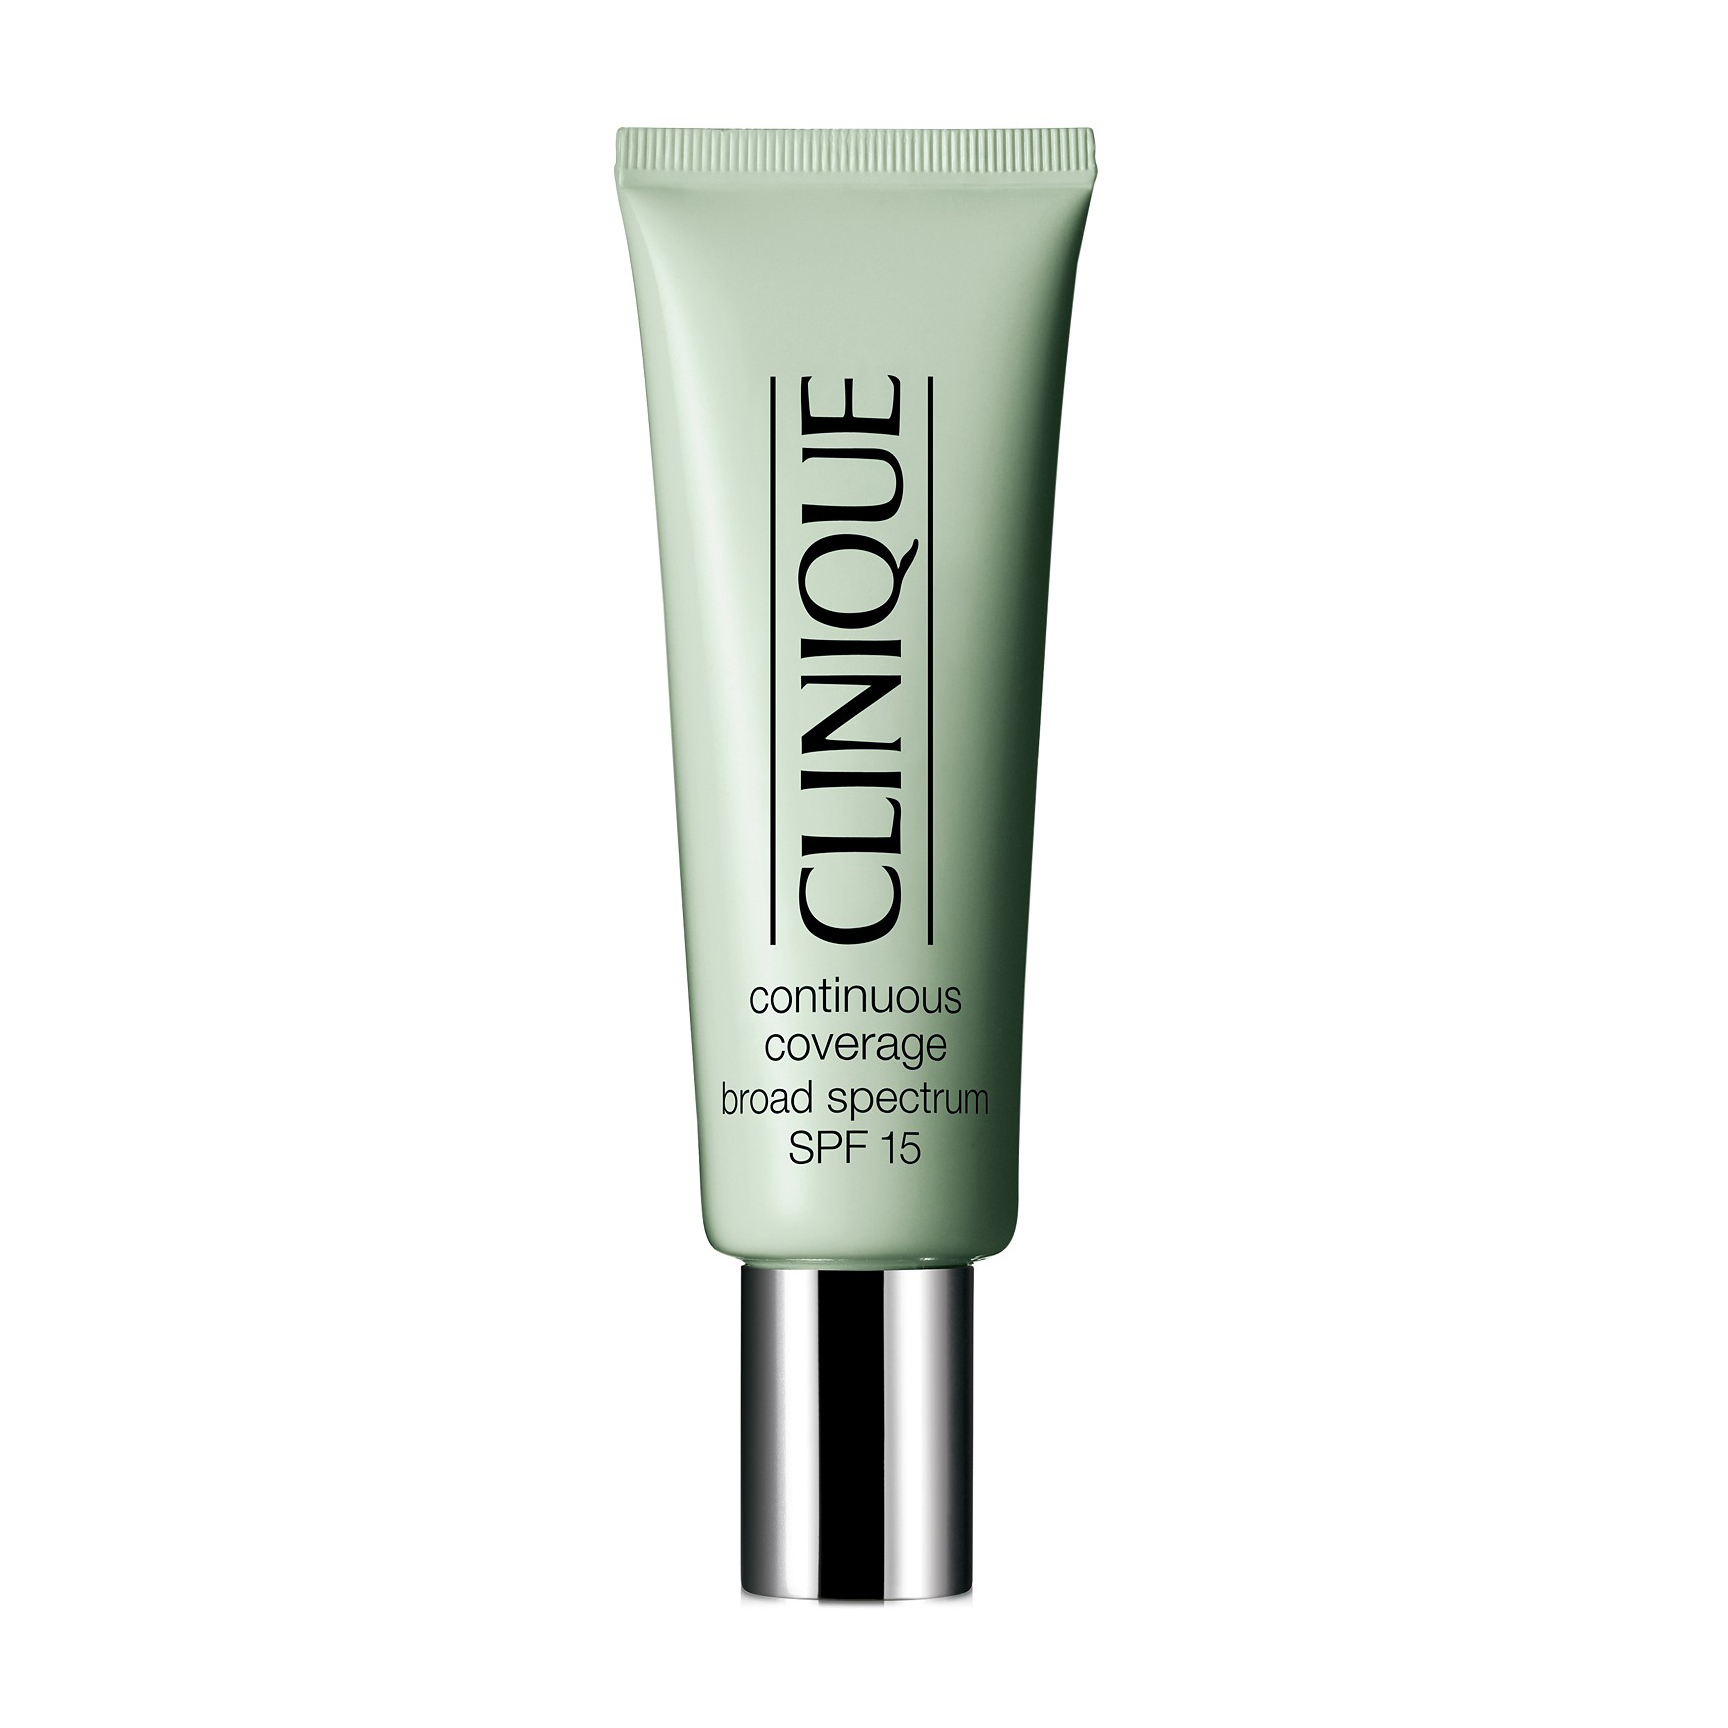 Clinique Continuous Coverage Foundation and Concealer SPF 15